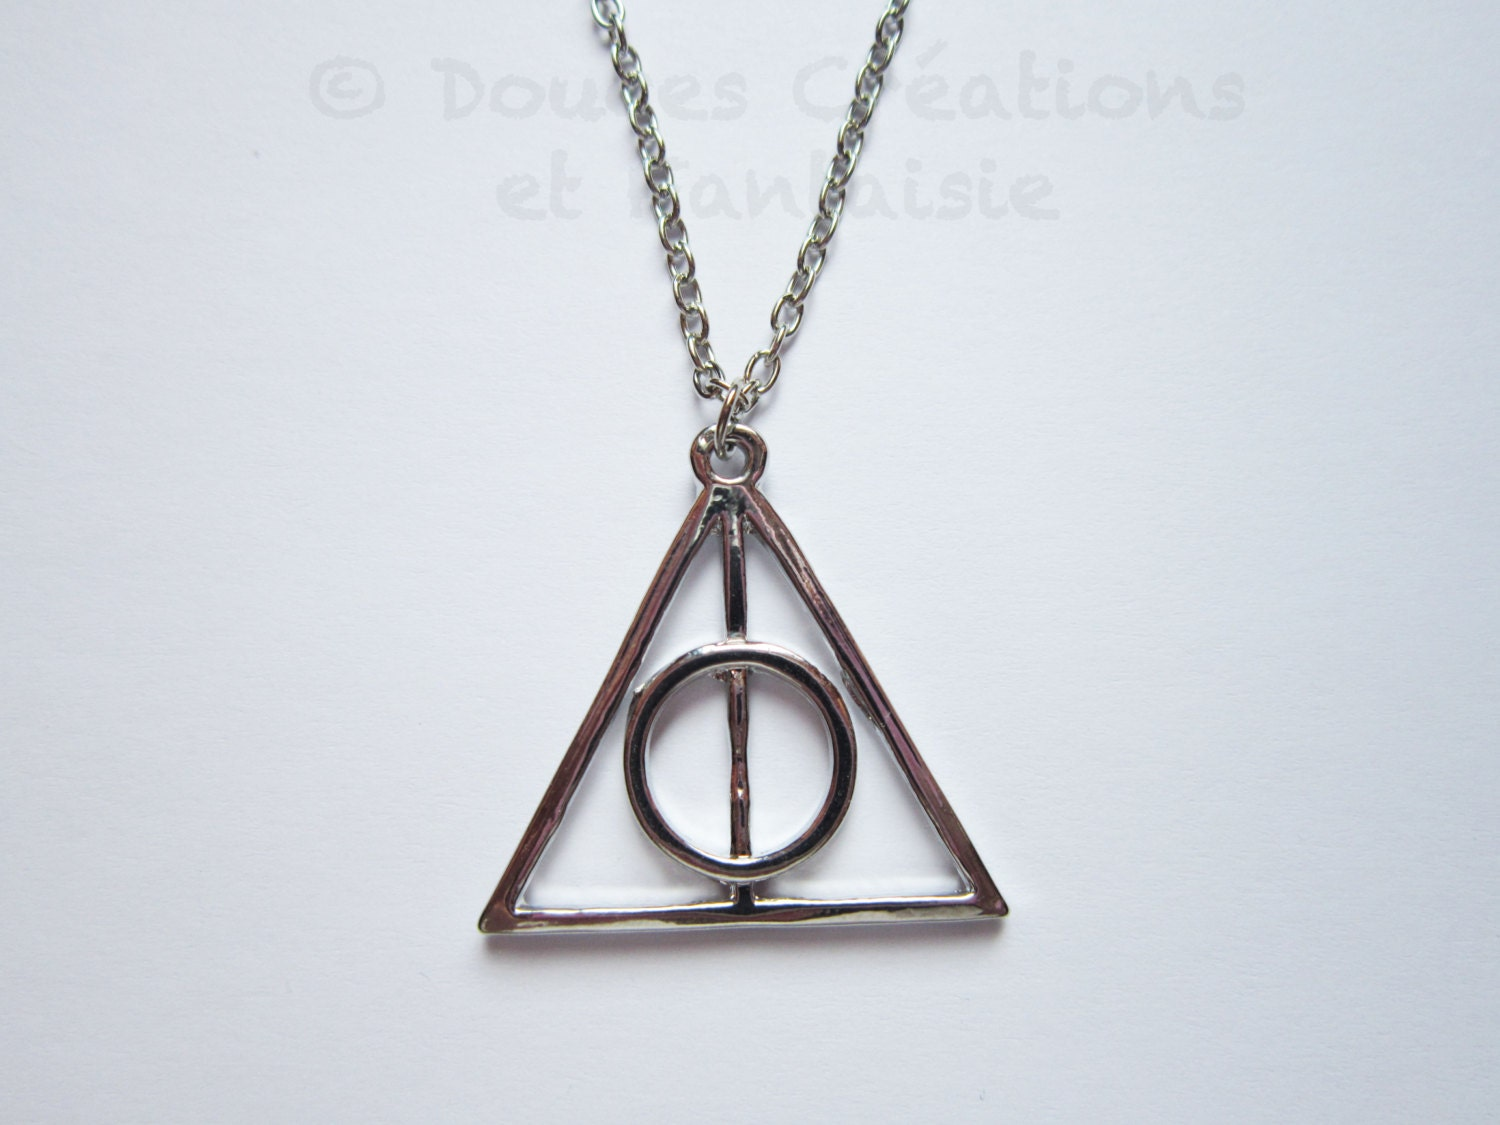 deathly hallows necklace harry potter jewelry by